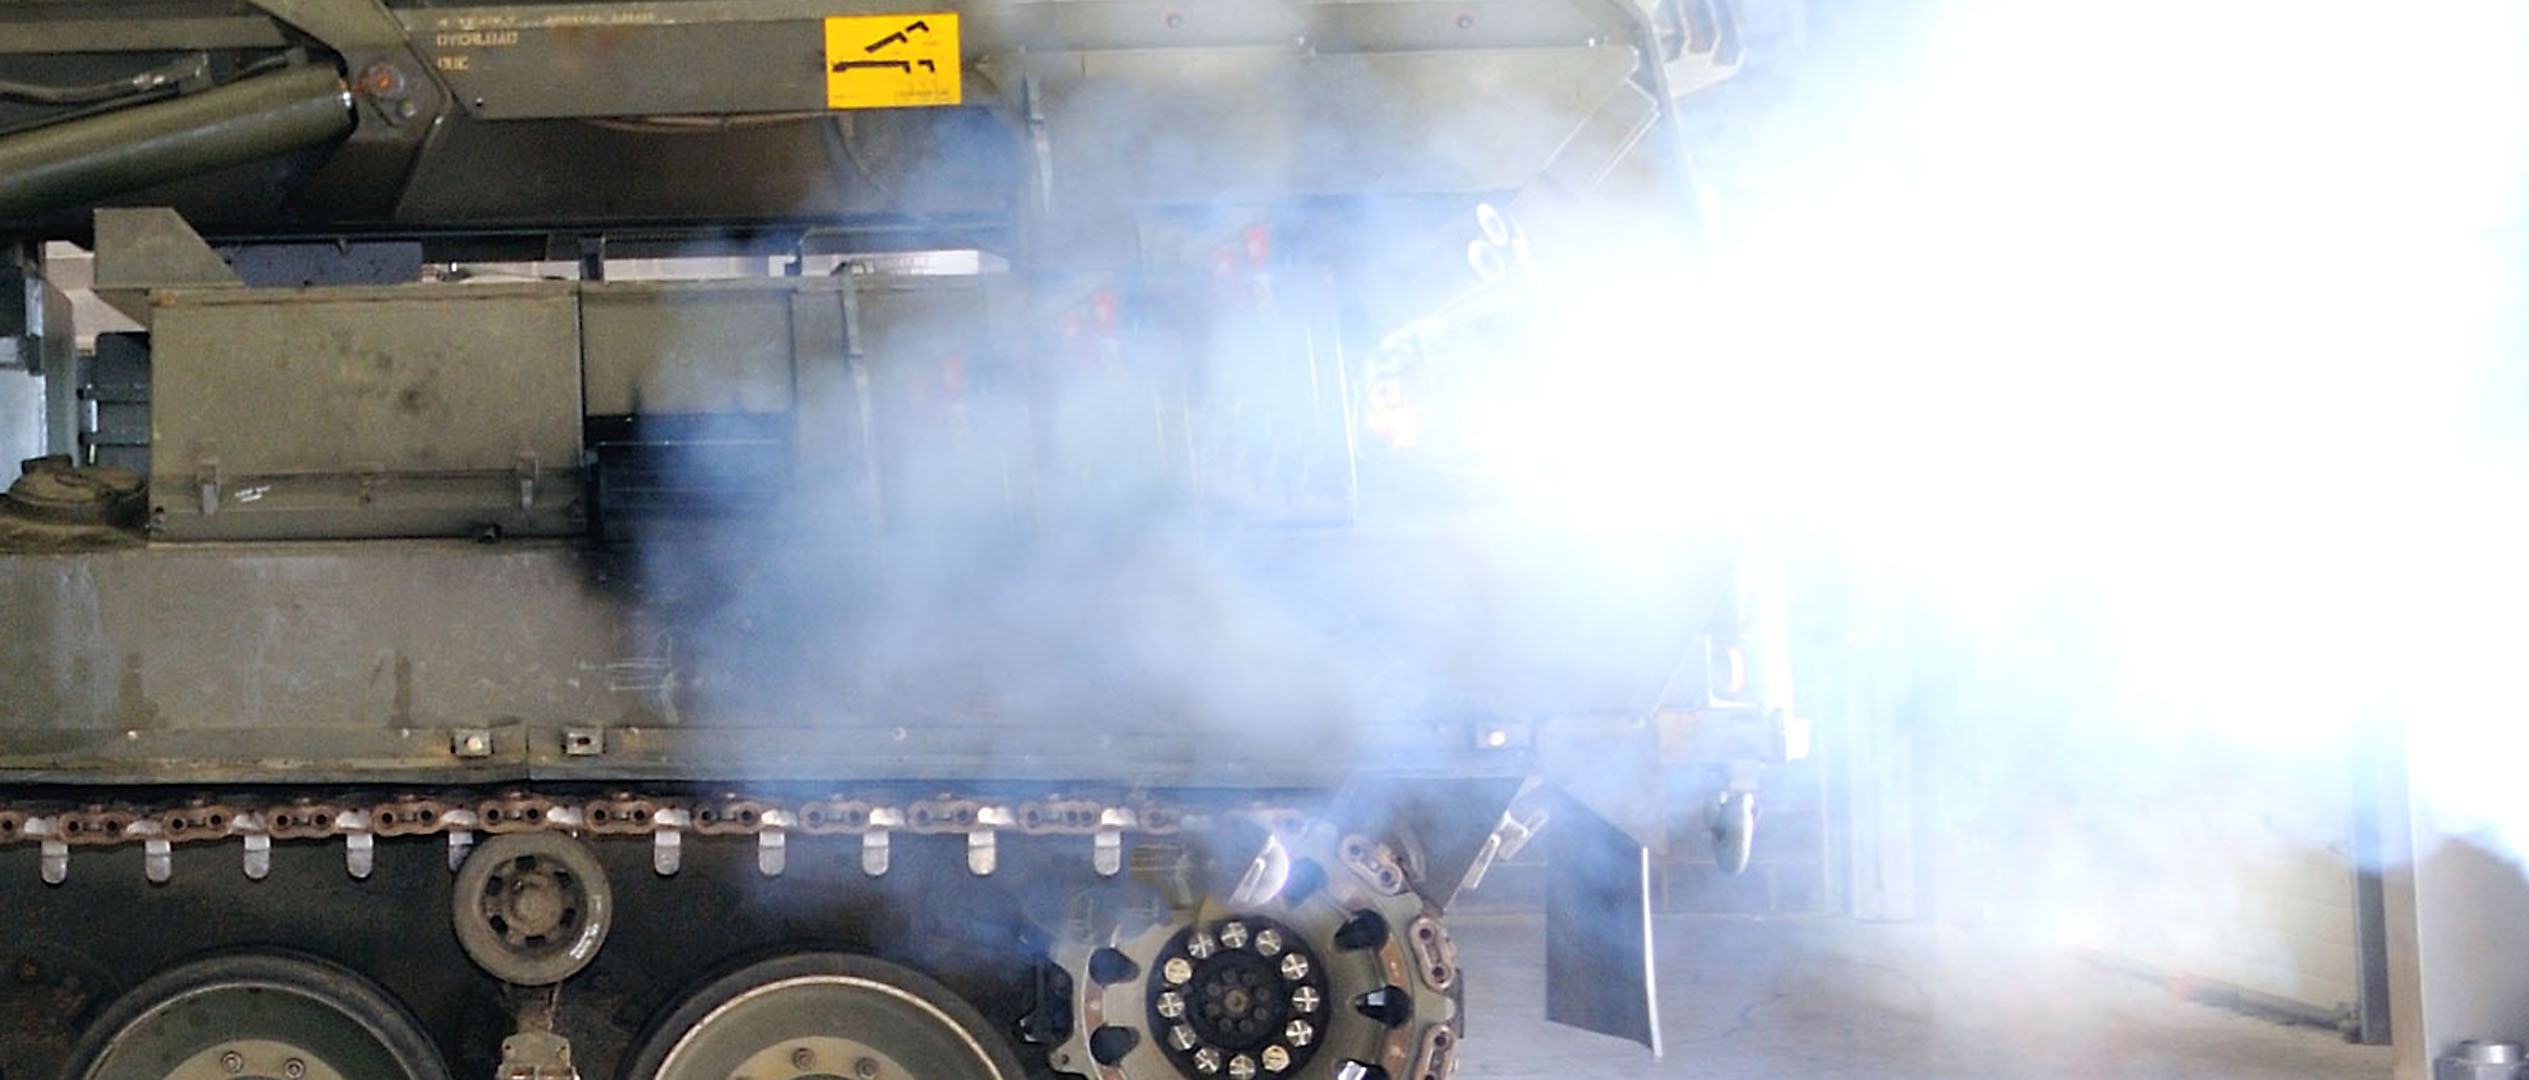 The Dangers of Exhaust Fumes